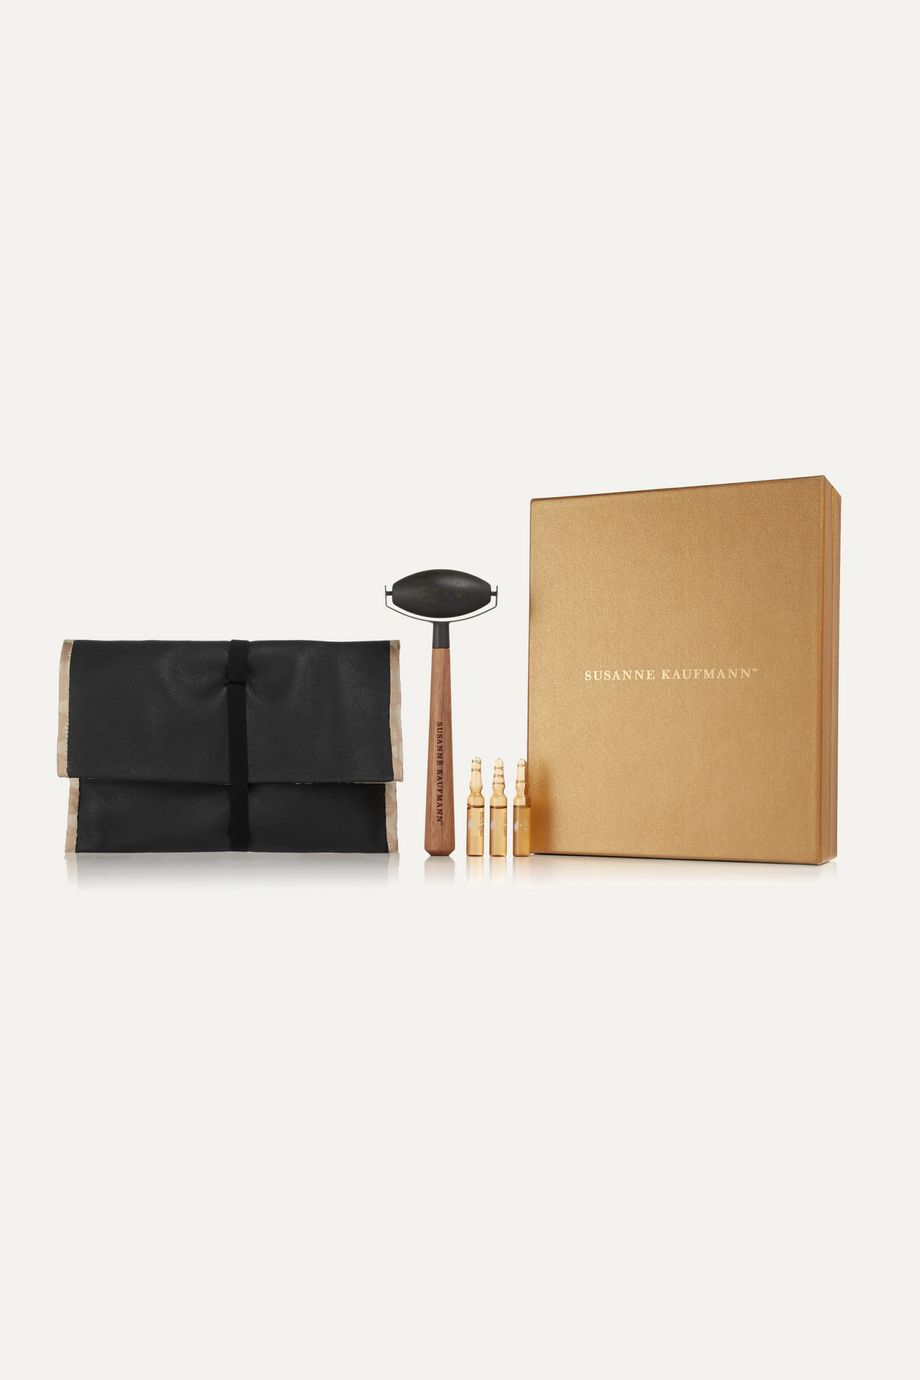 Susanne Kaufmann Roller and Ampoule Gift Set